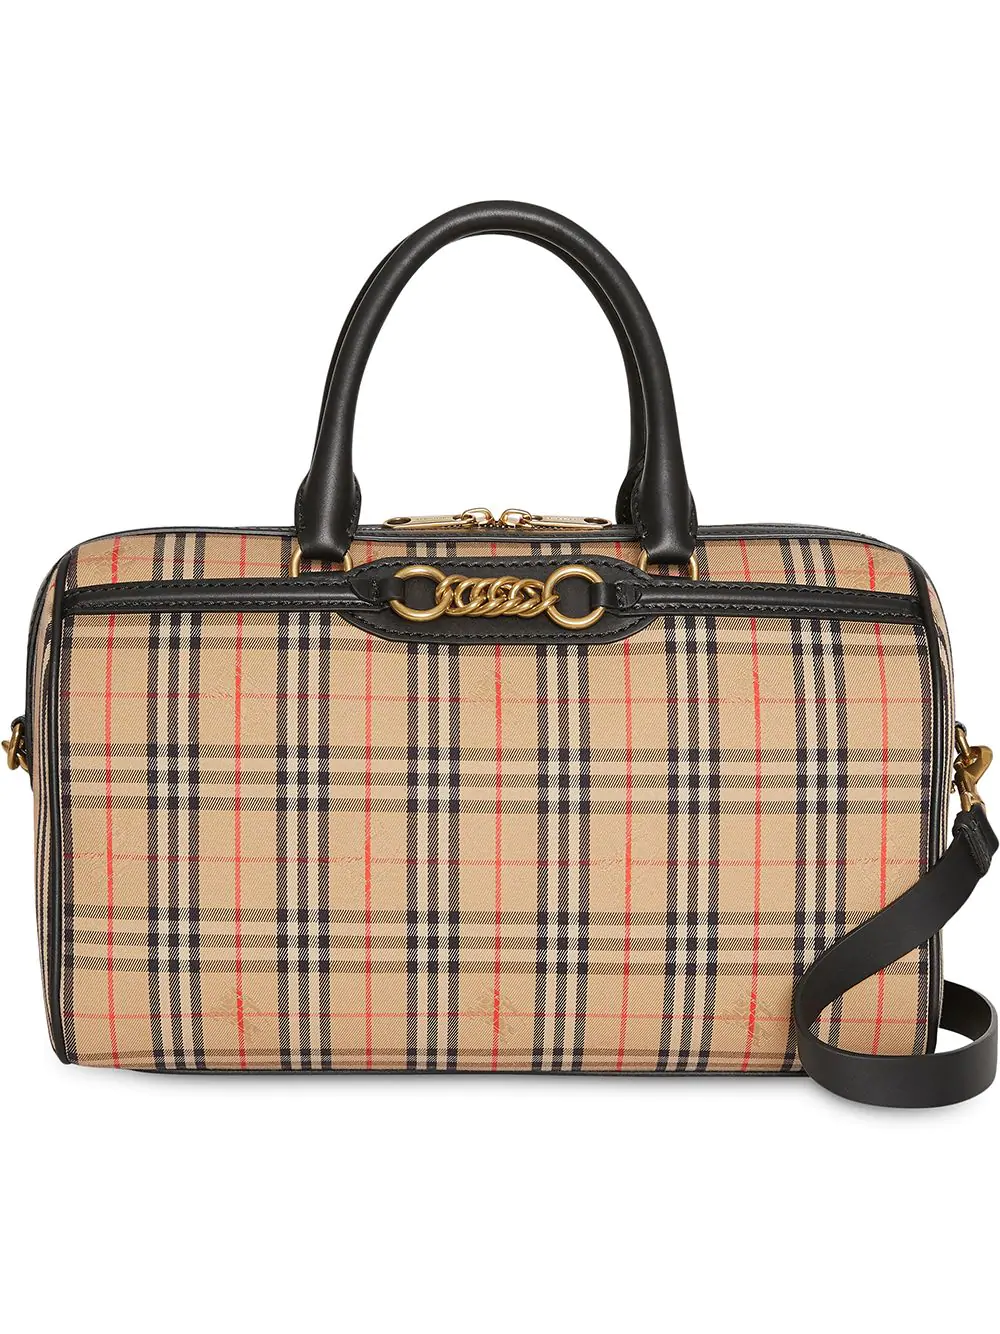 6715958923f6 Burberry The Medium 1983 Check Link Bowling Bag - Neutrals